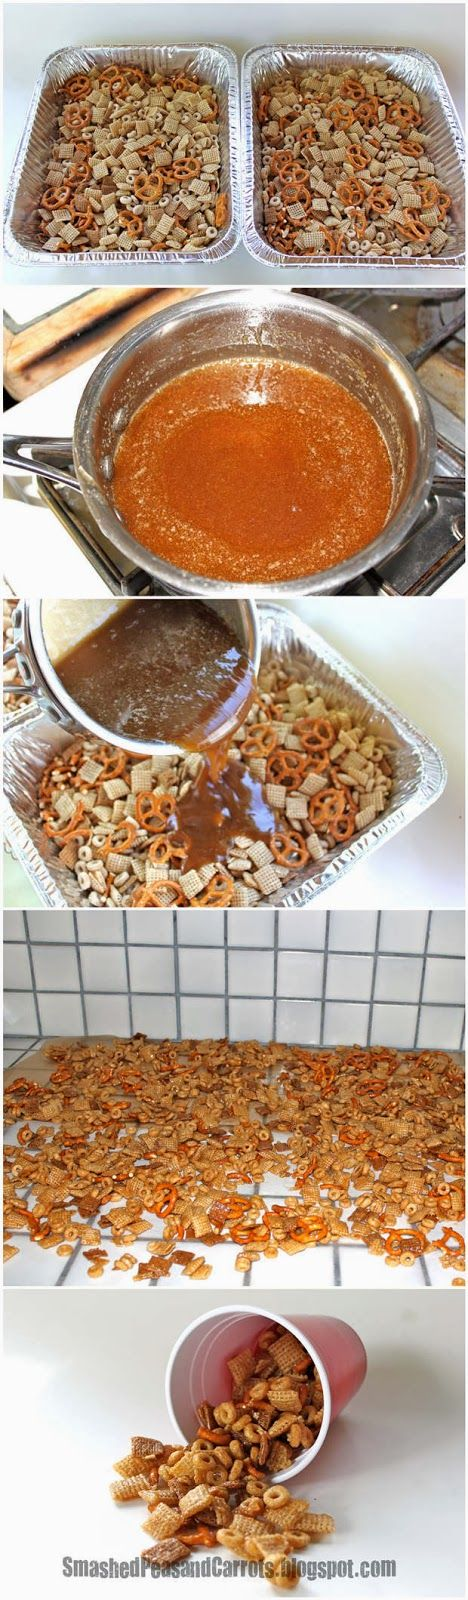 The Perfect Snack...Sweet Cereal Mix